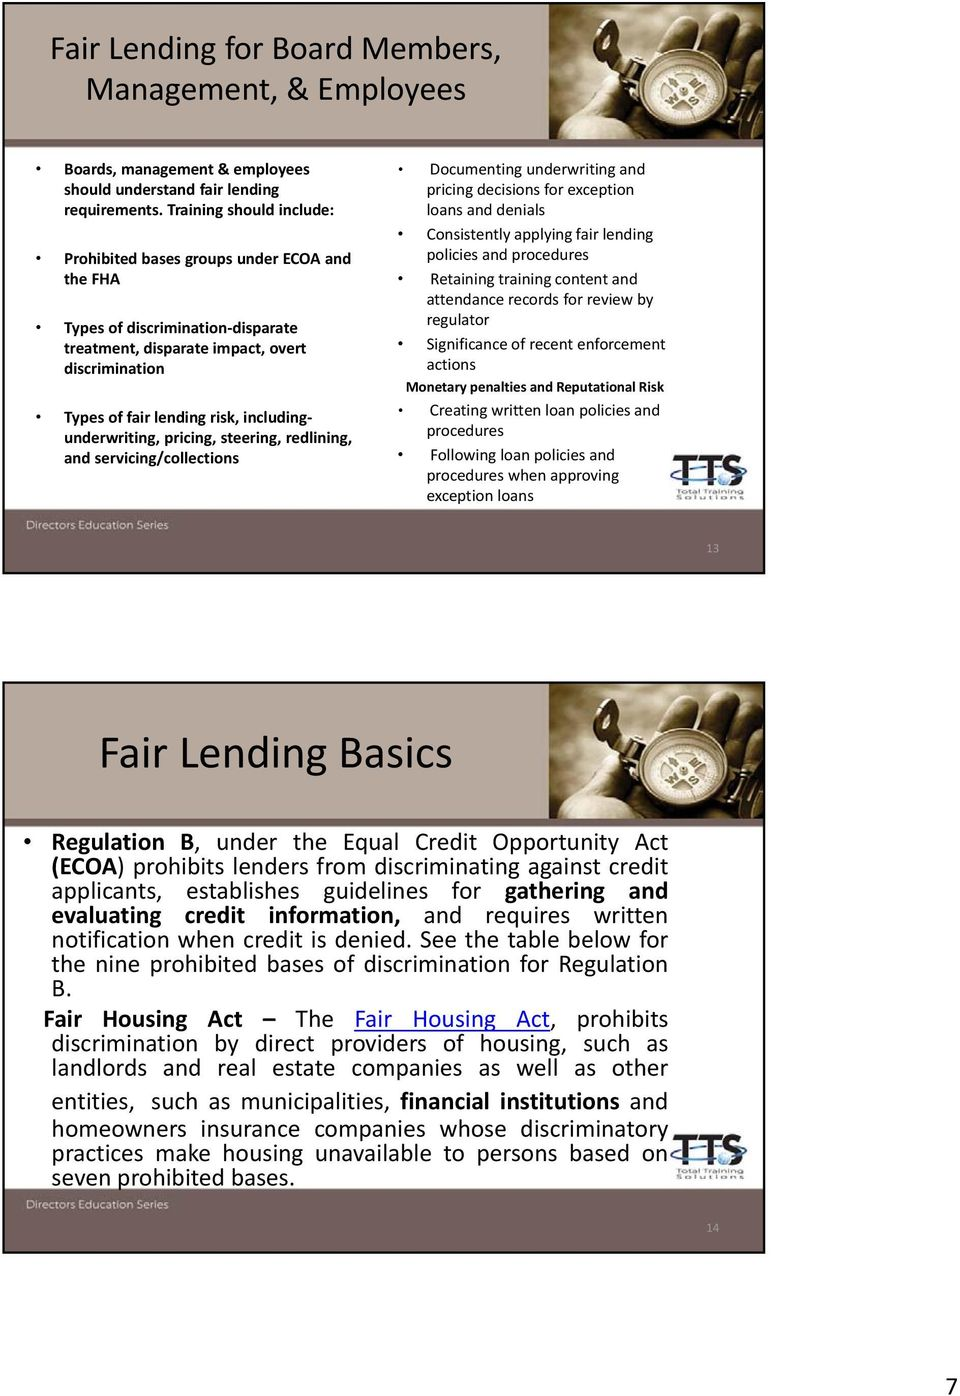 includingunderwriting, pricing, steering, redlining, and servicing/collections Documenting underwriting and pricing decisions for exception loans and denials Consistently applying fair lending